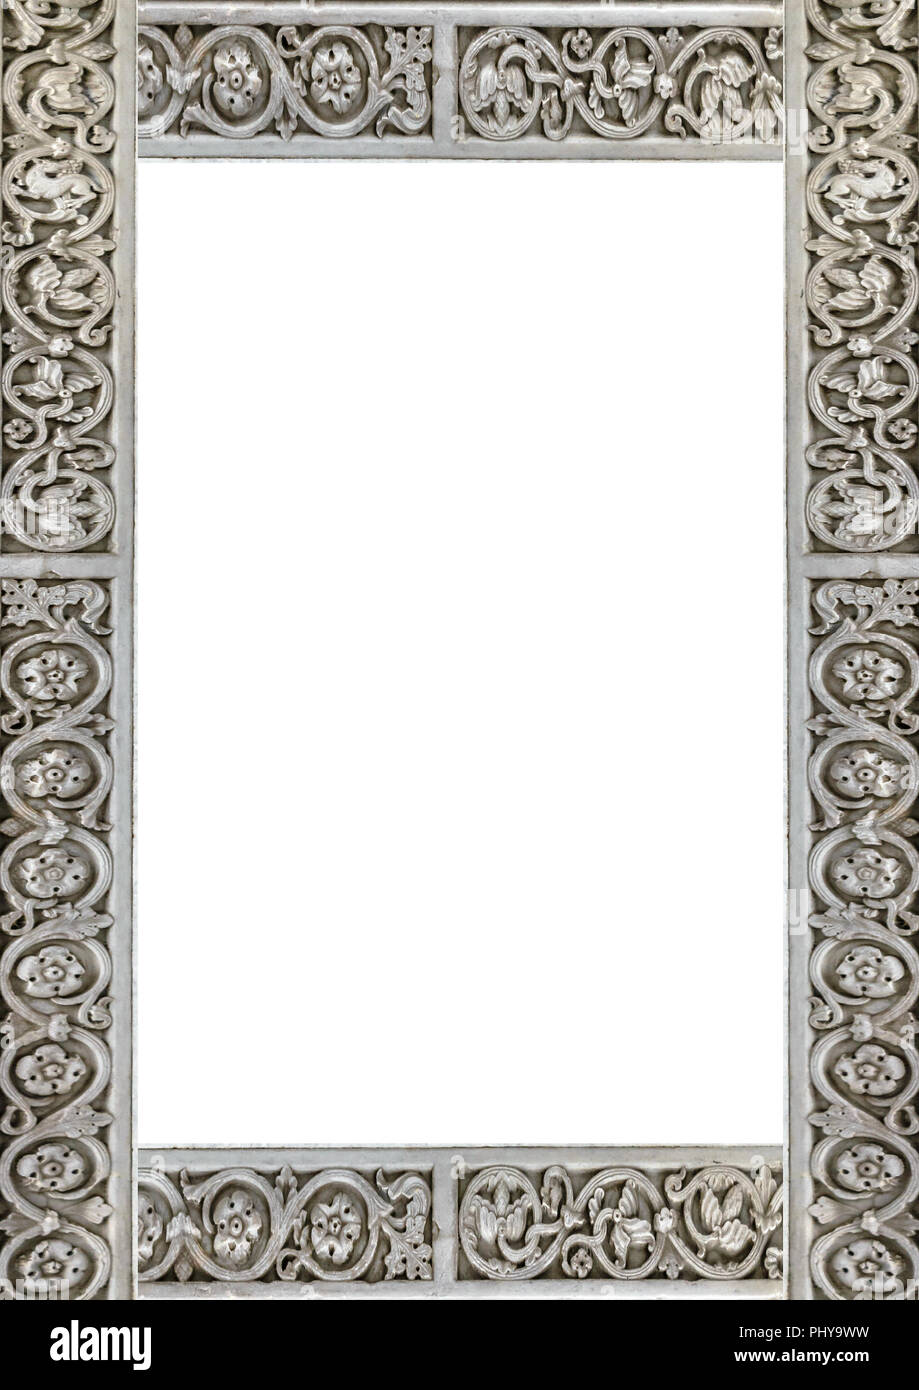 White frame background with decorated design borders Stock Photo ...